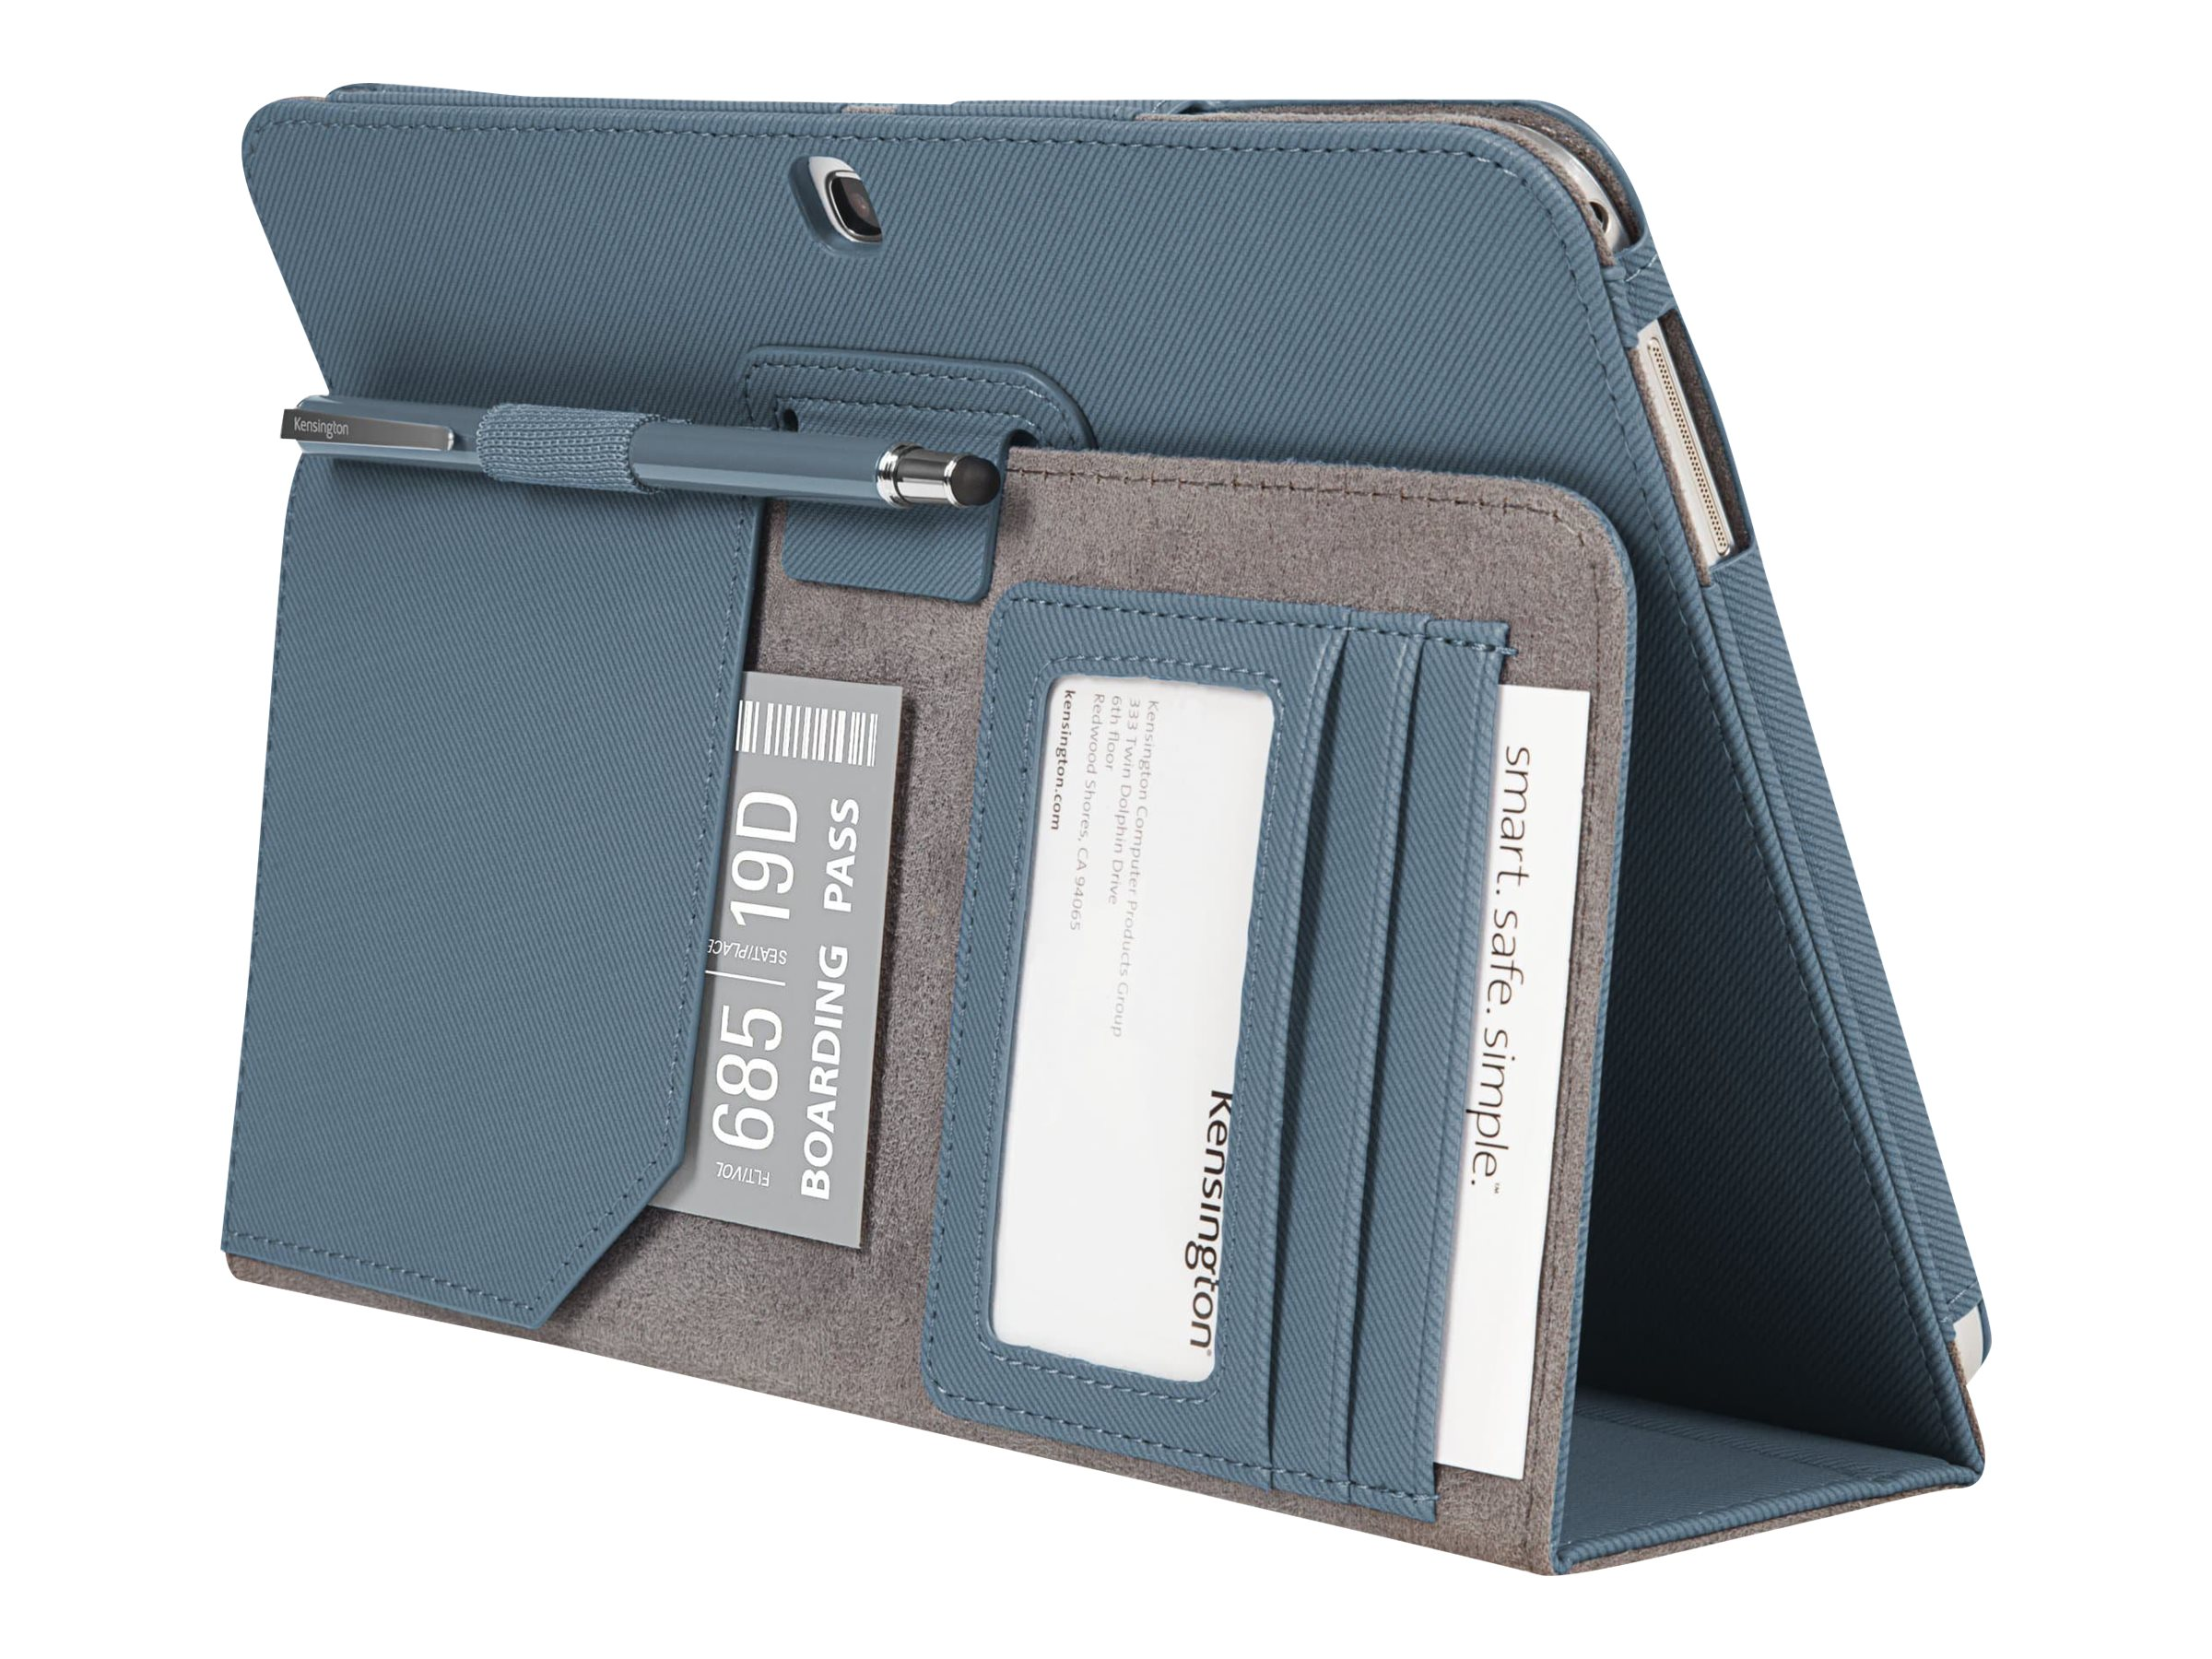 Kensington Comercio Soft Folio Case & Stand for Galaxy Tab 3 10.1, Slate Gray, K97097WW